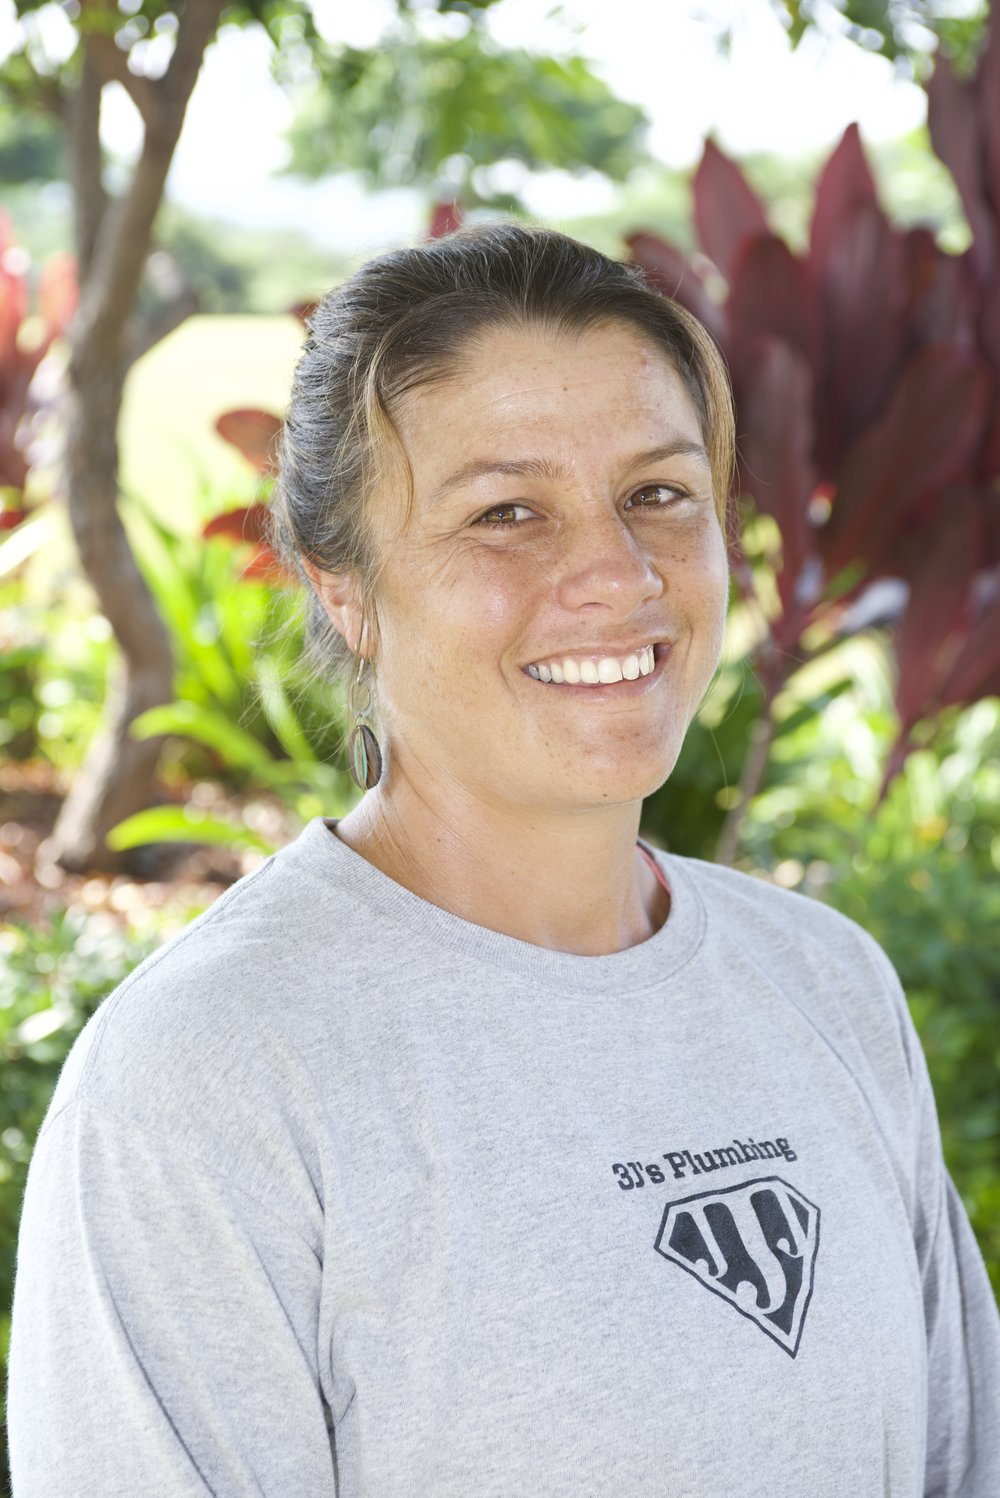 Melissa Emond - Garden Instructor